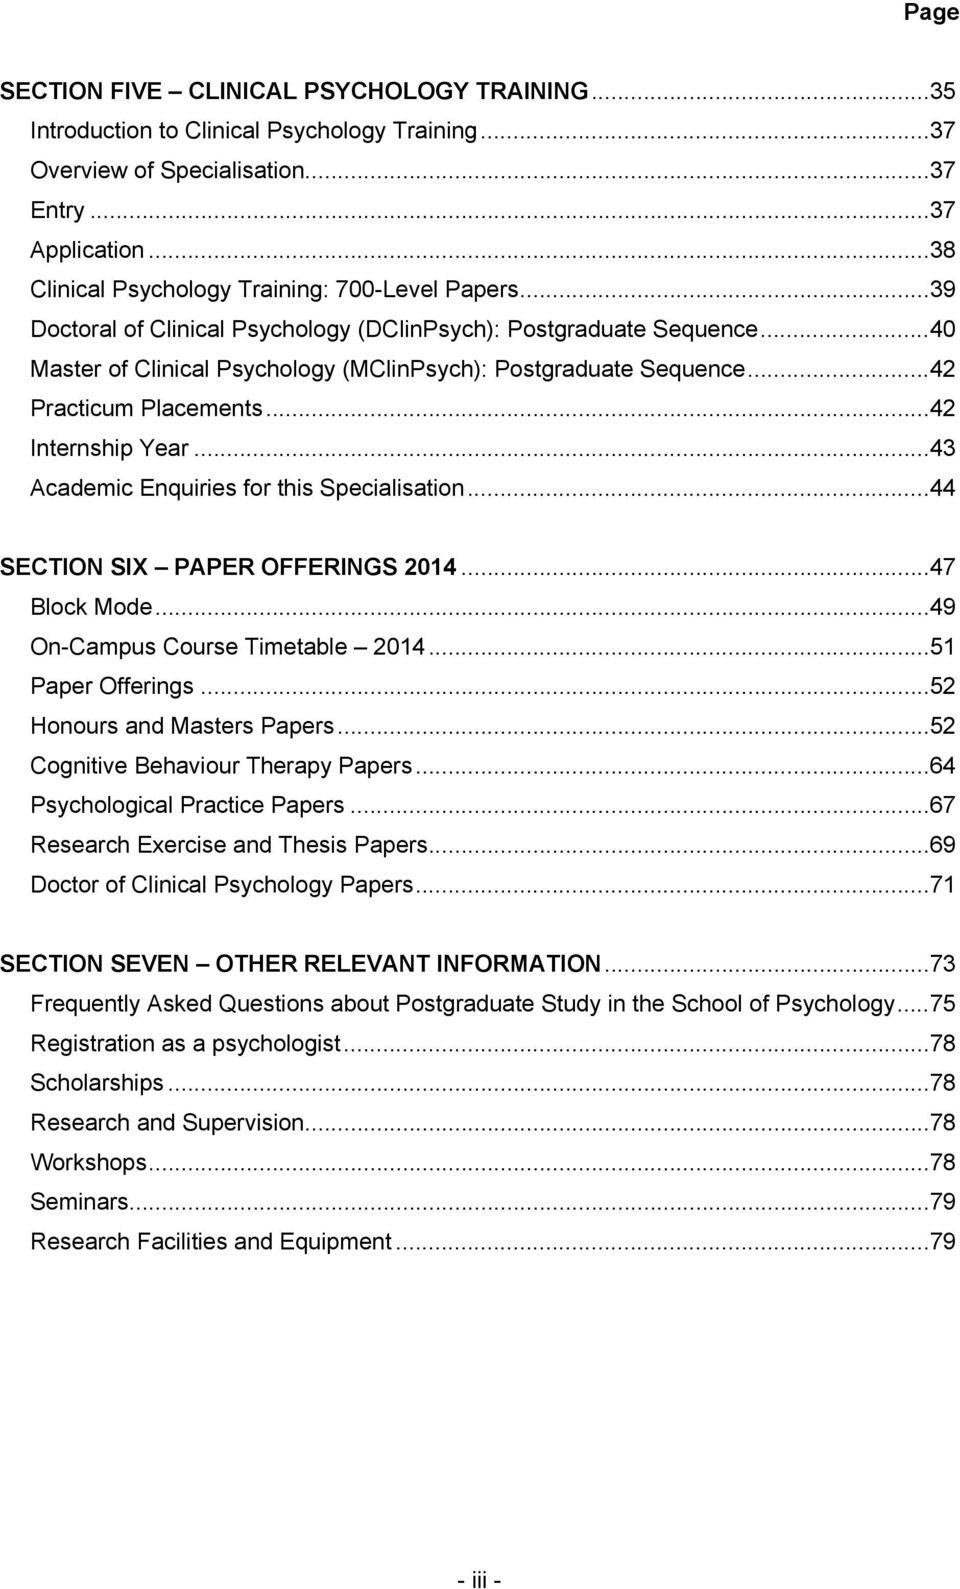 .. 42 Practicum Placements... 42 Internship Year... 43 Academic Enquiries for this Specialisation... 44 SECTION SIX PAPER OFFERINGS 2014... 47 Block Mode... 49 On-Campus Course Timetable 2014.